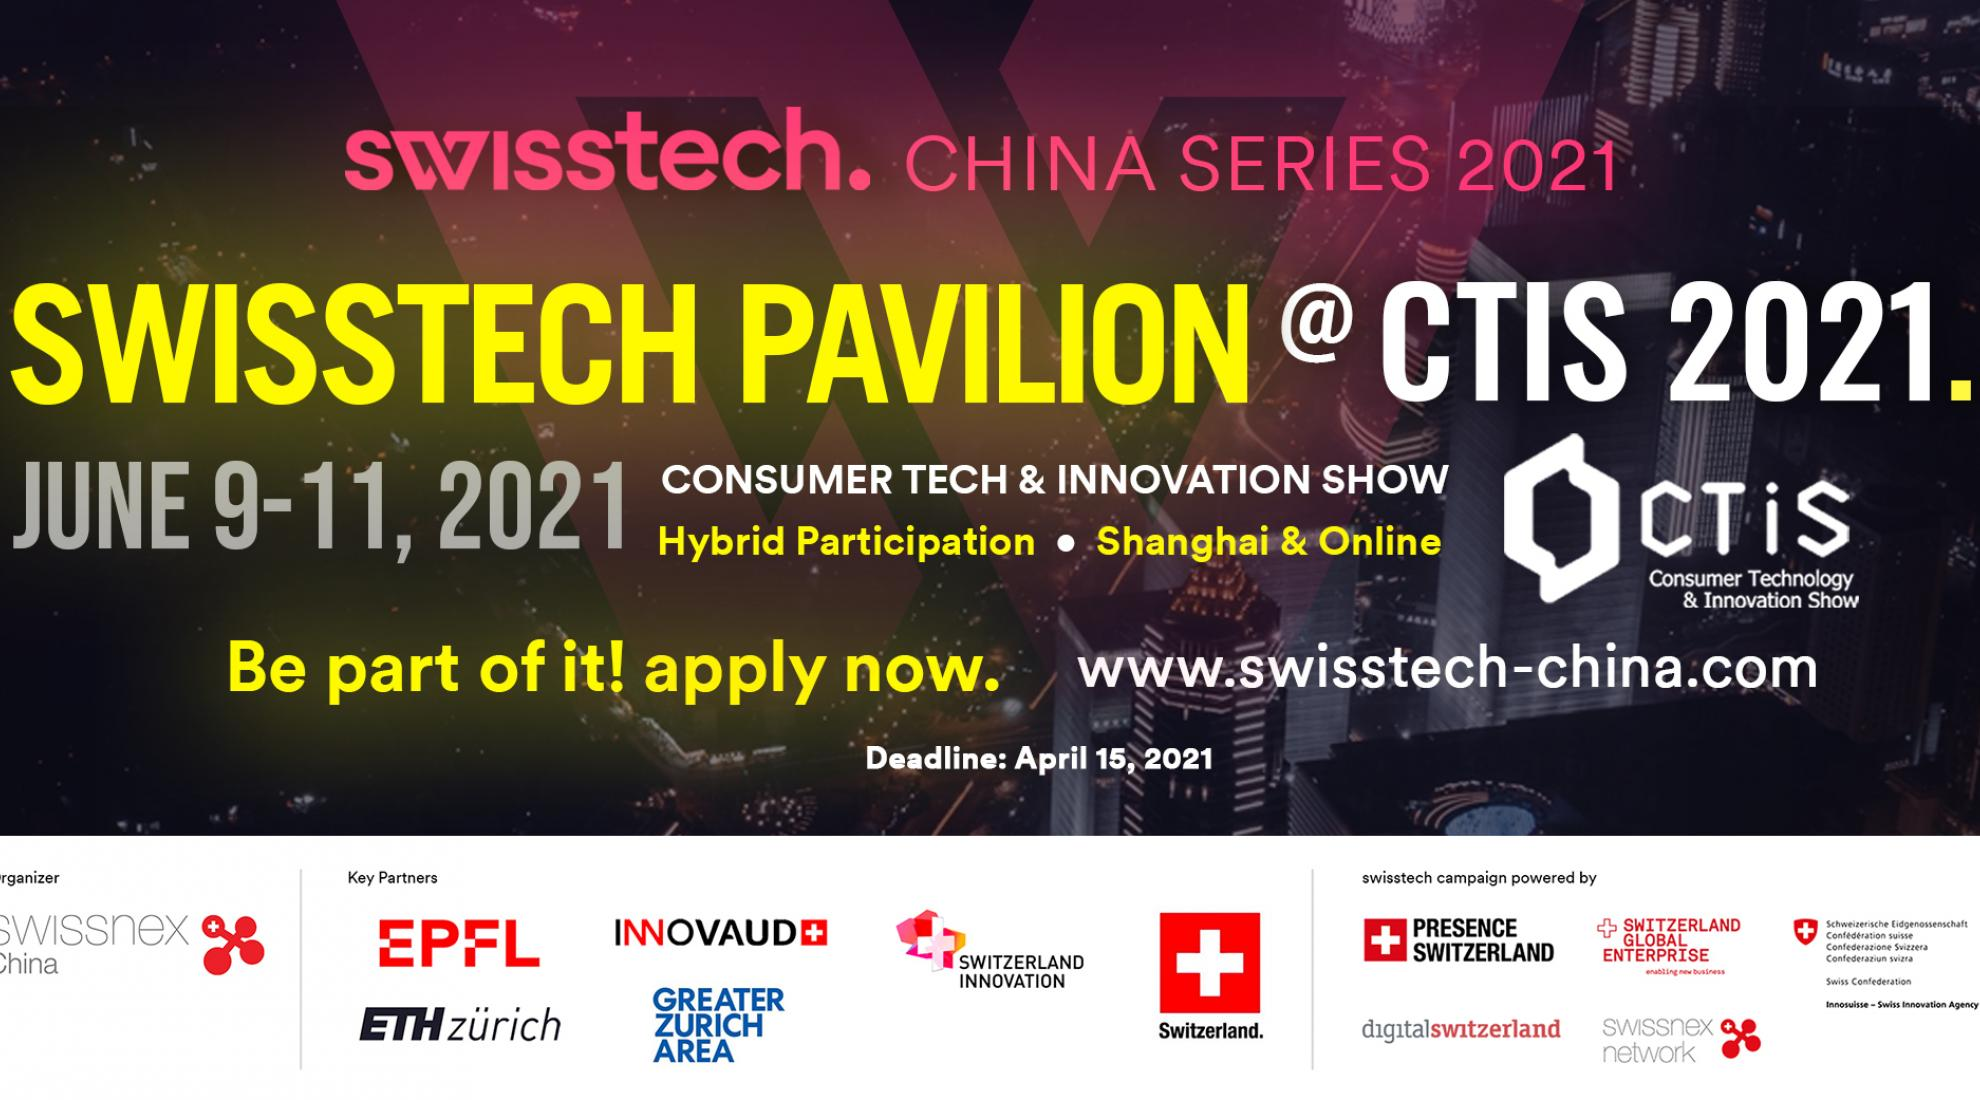 Swisstech Pavilion - China series